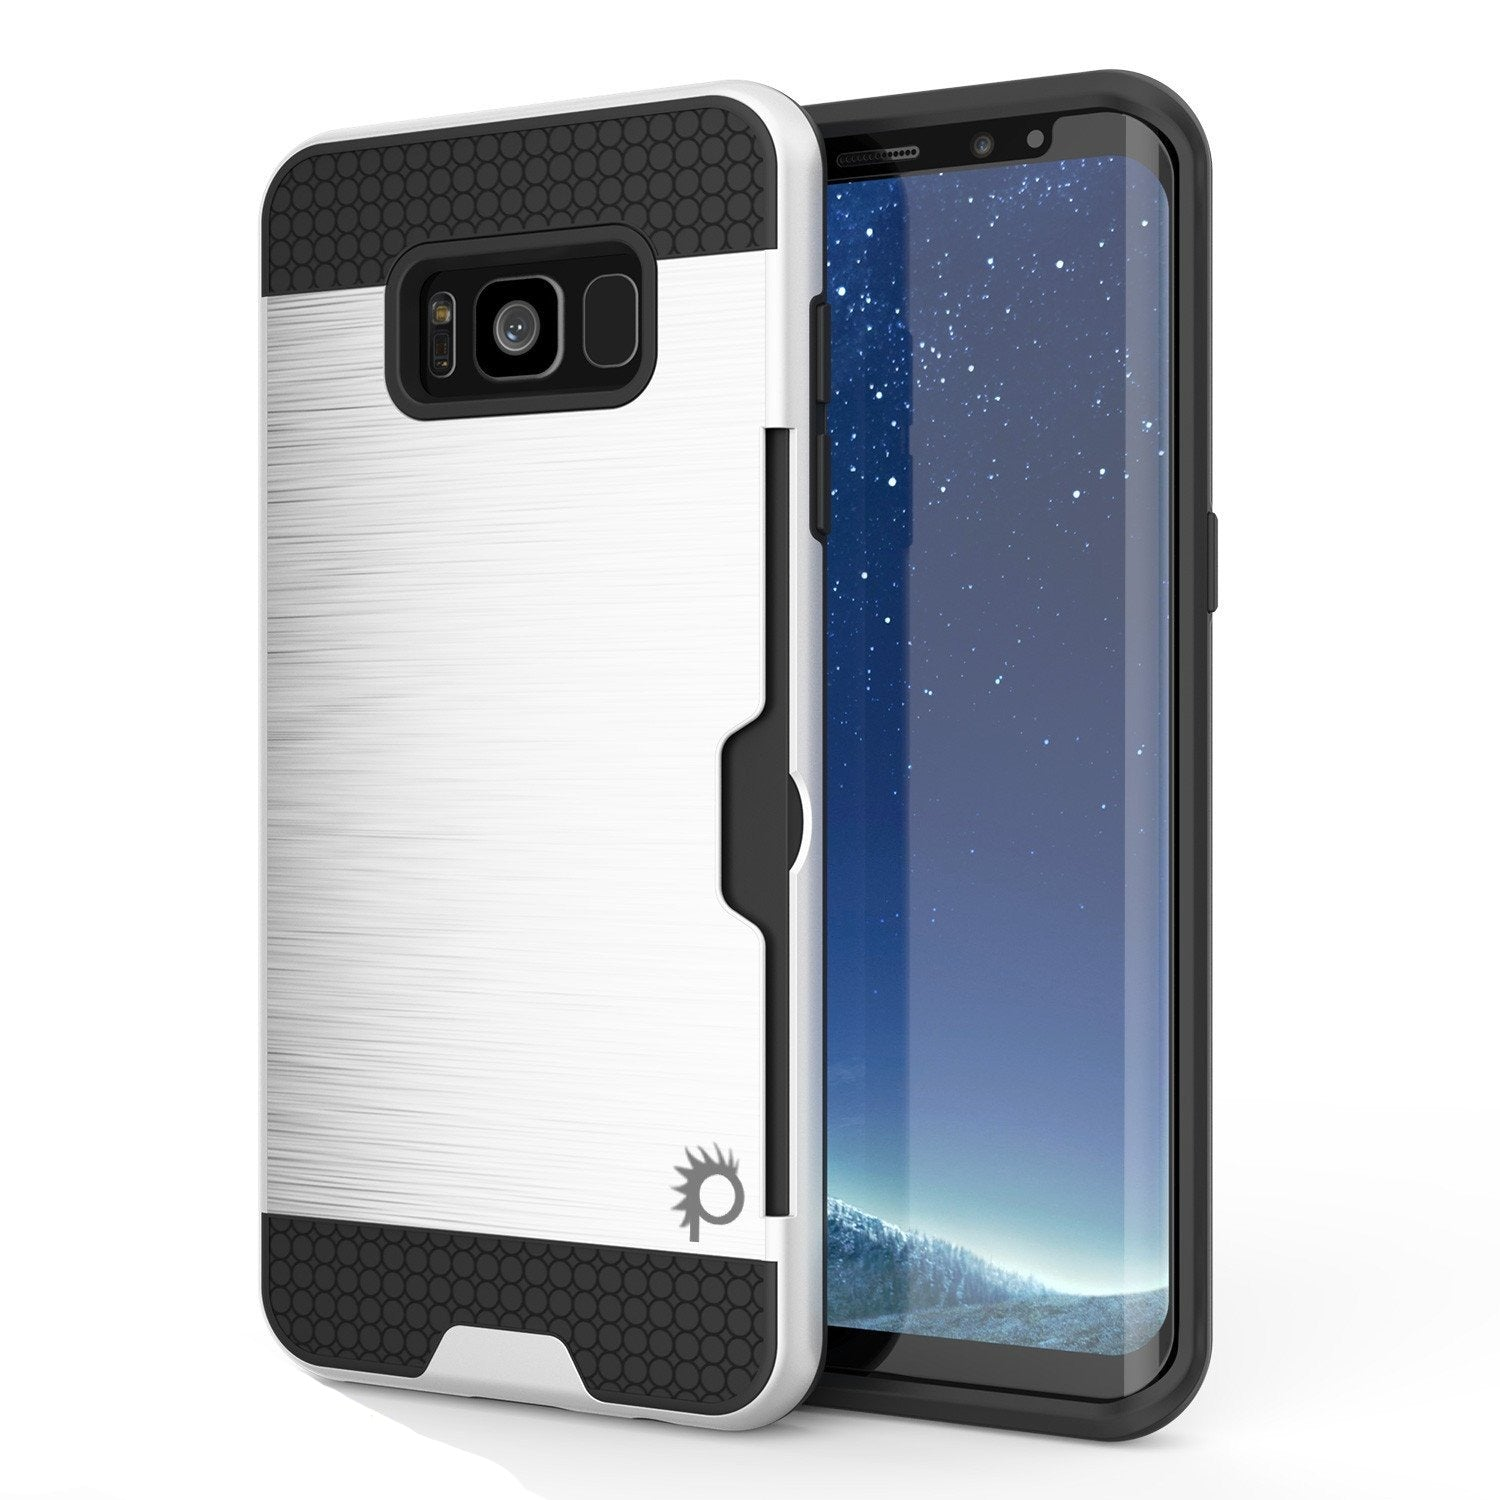 Galaxy S8 Plus Case, PUNKcase [SLOT Series] [Slim Fit] Dual-Layer Armor Cover w/Integrated Anti-Shock System, Credit Card Slot & PunkShield Screen Protector for Samsung Galaxy S8+ [White] - PunkCase NZ